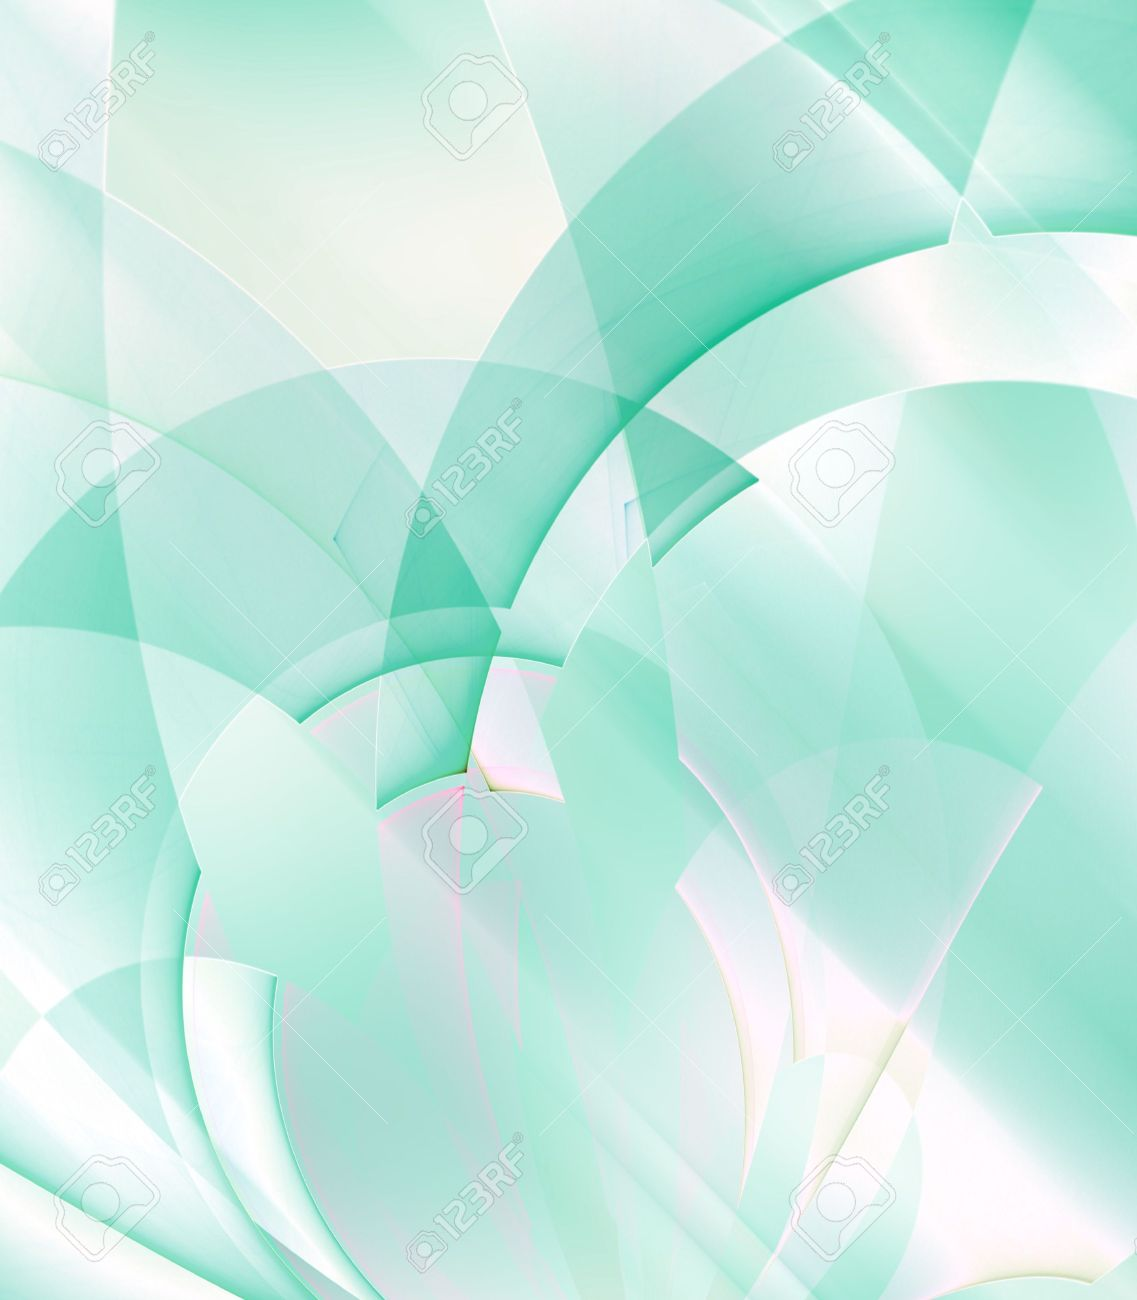 Mint Green Color layered curves and arch patterns in mint green color - fractal